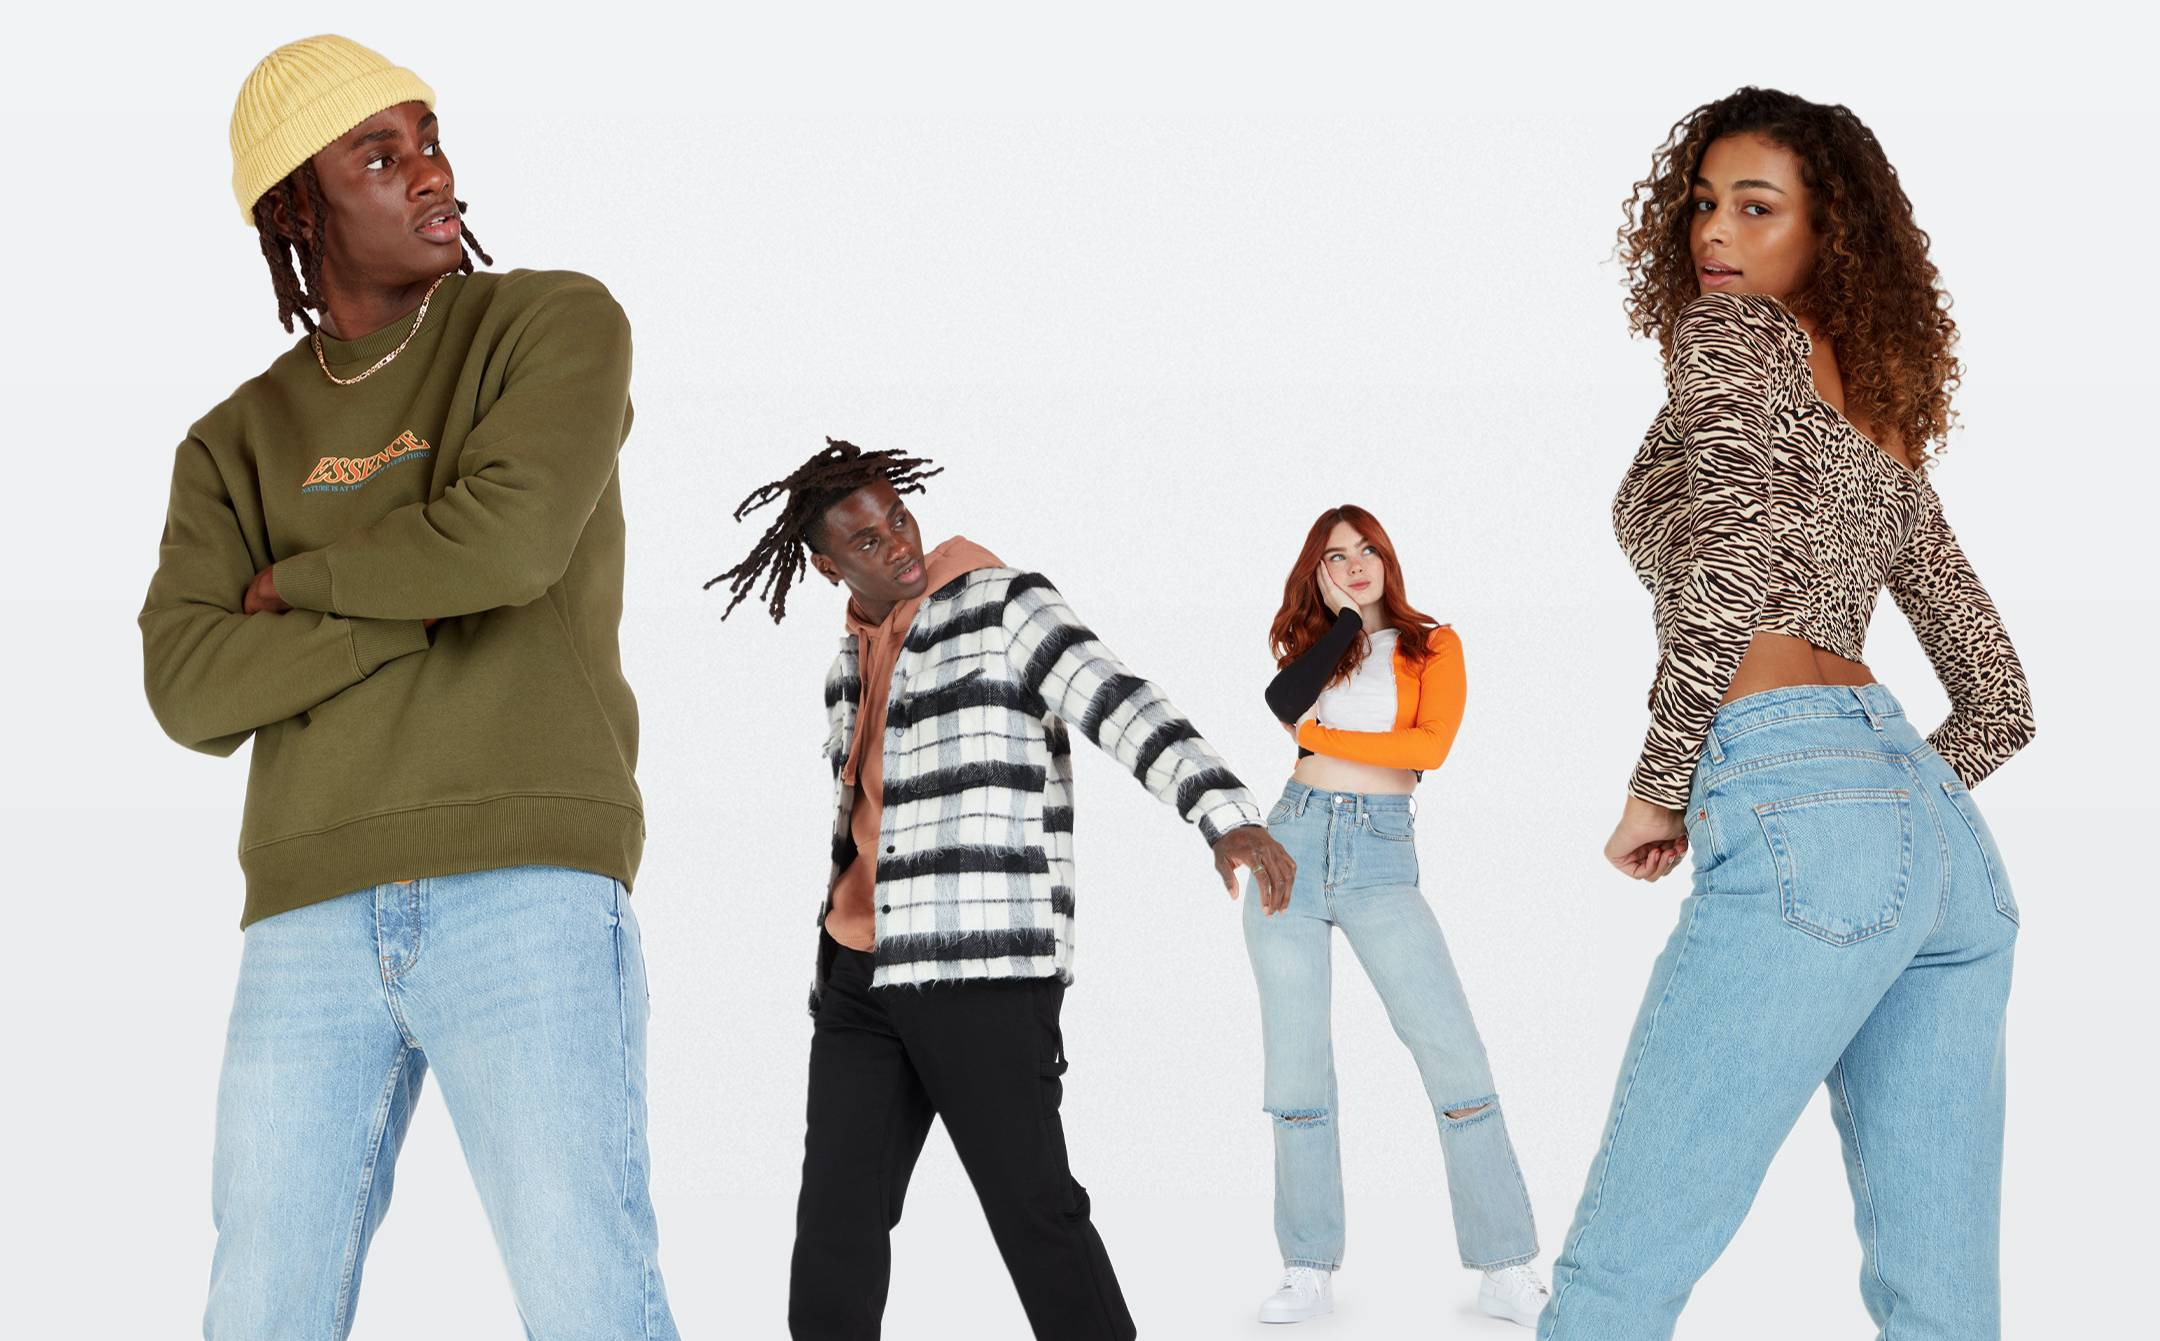 Asos expands Topshop and Topman ranges